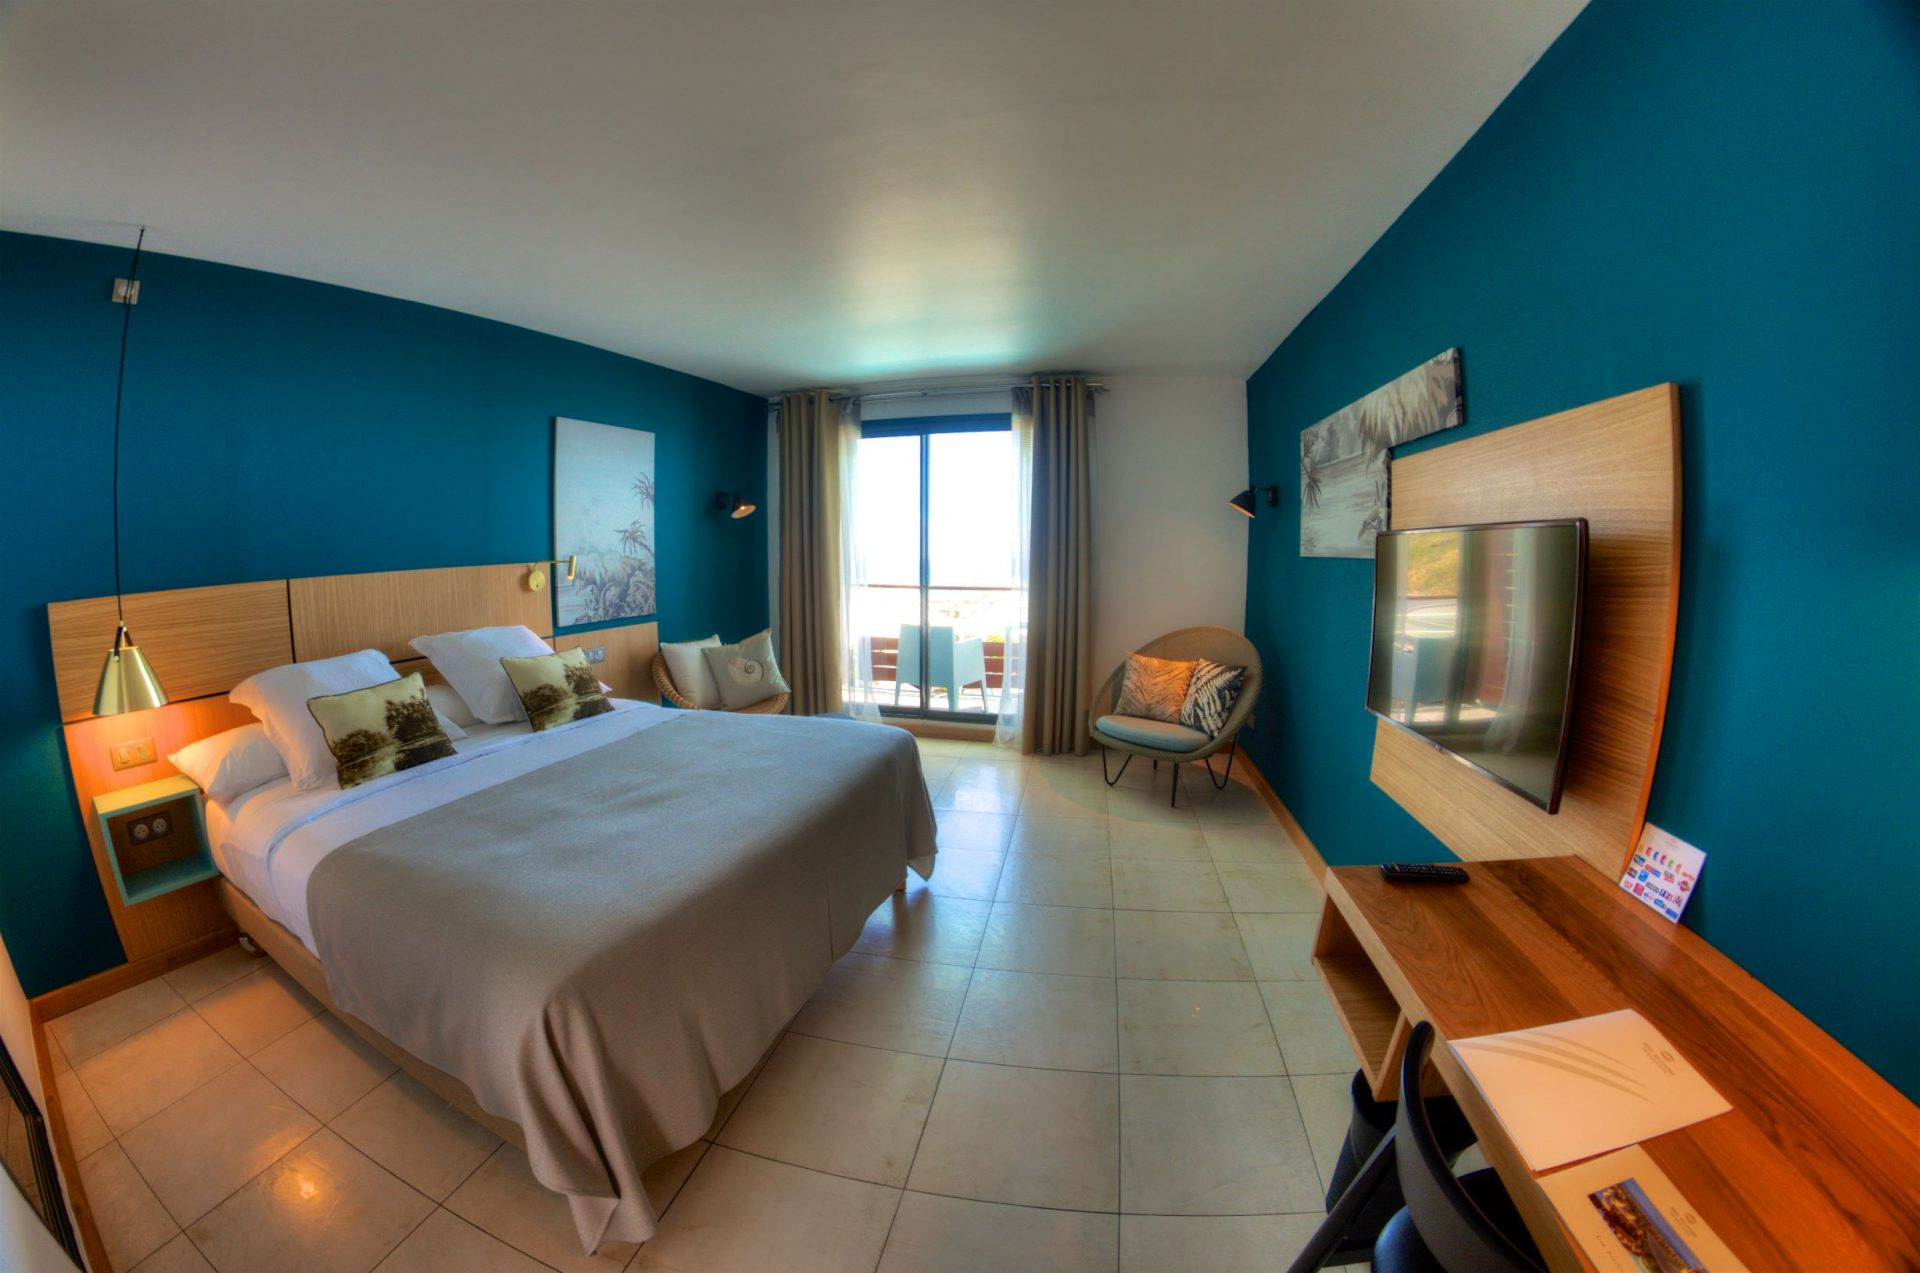 20181012HOTEL-BELLEPIERRE-CHAMBRES 03